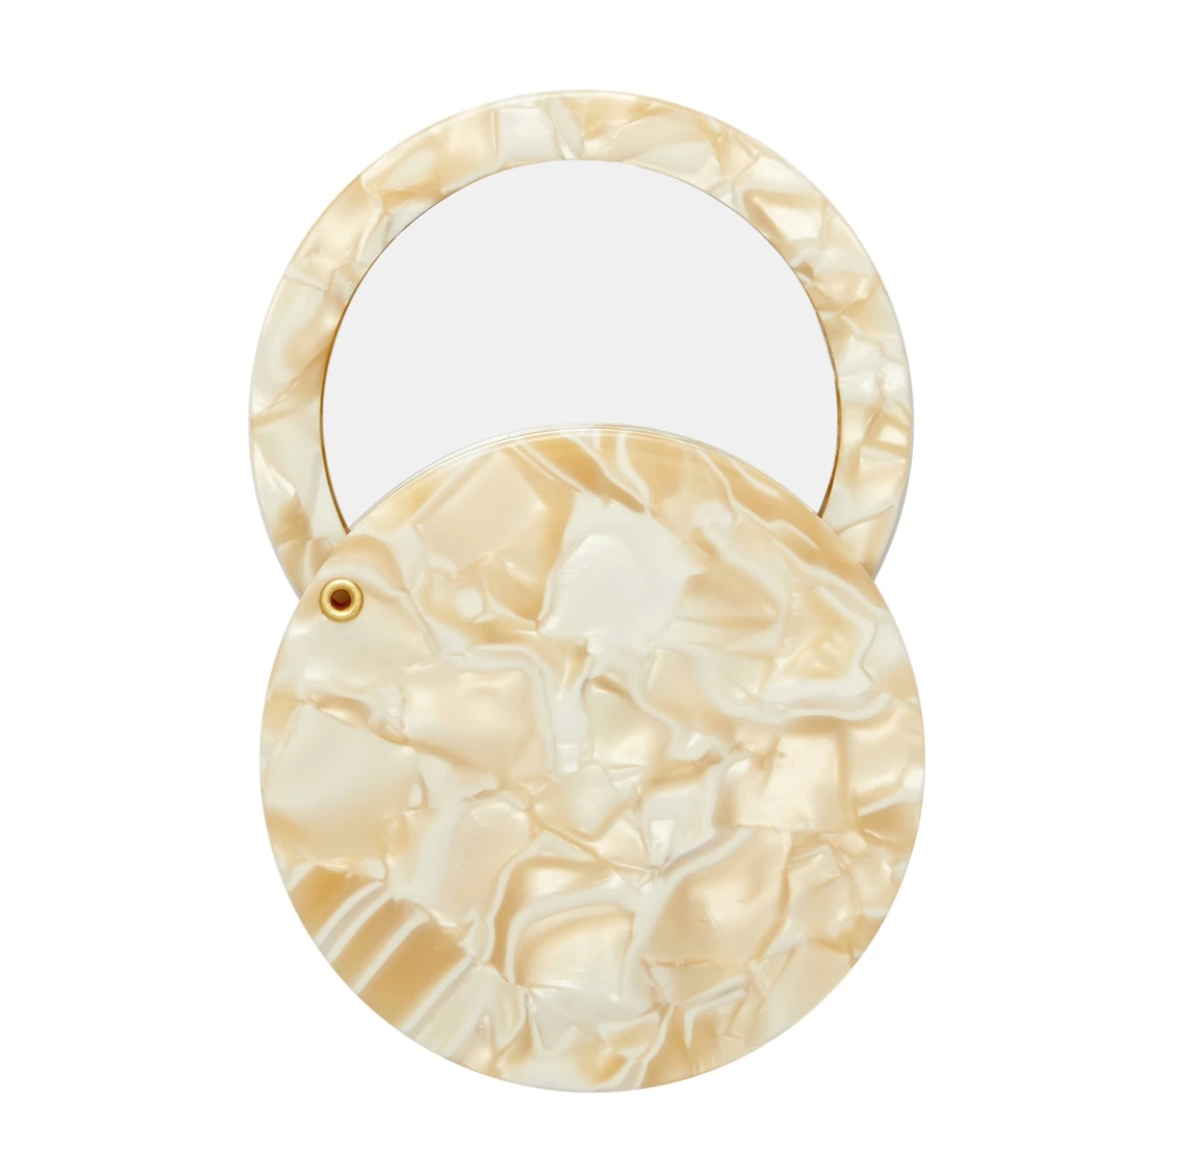 Circle Mirror in Ivory | MACHETE